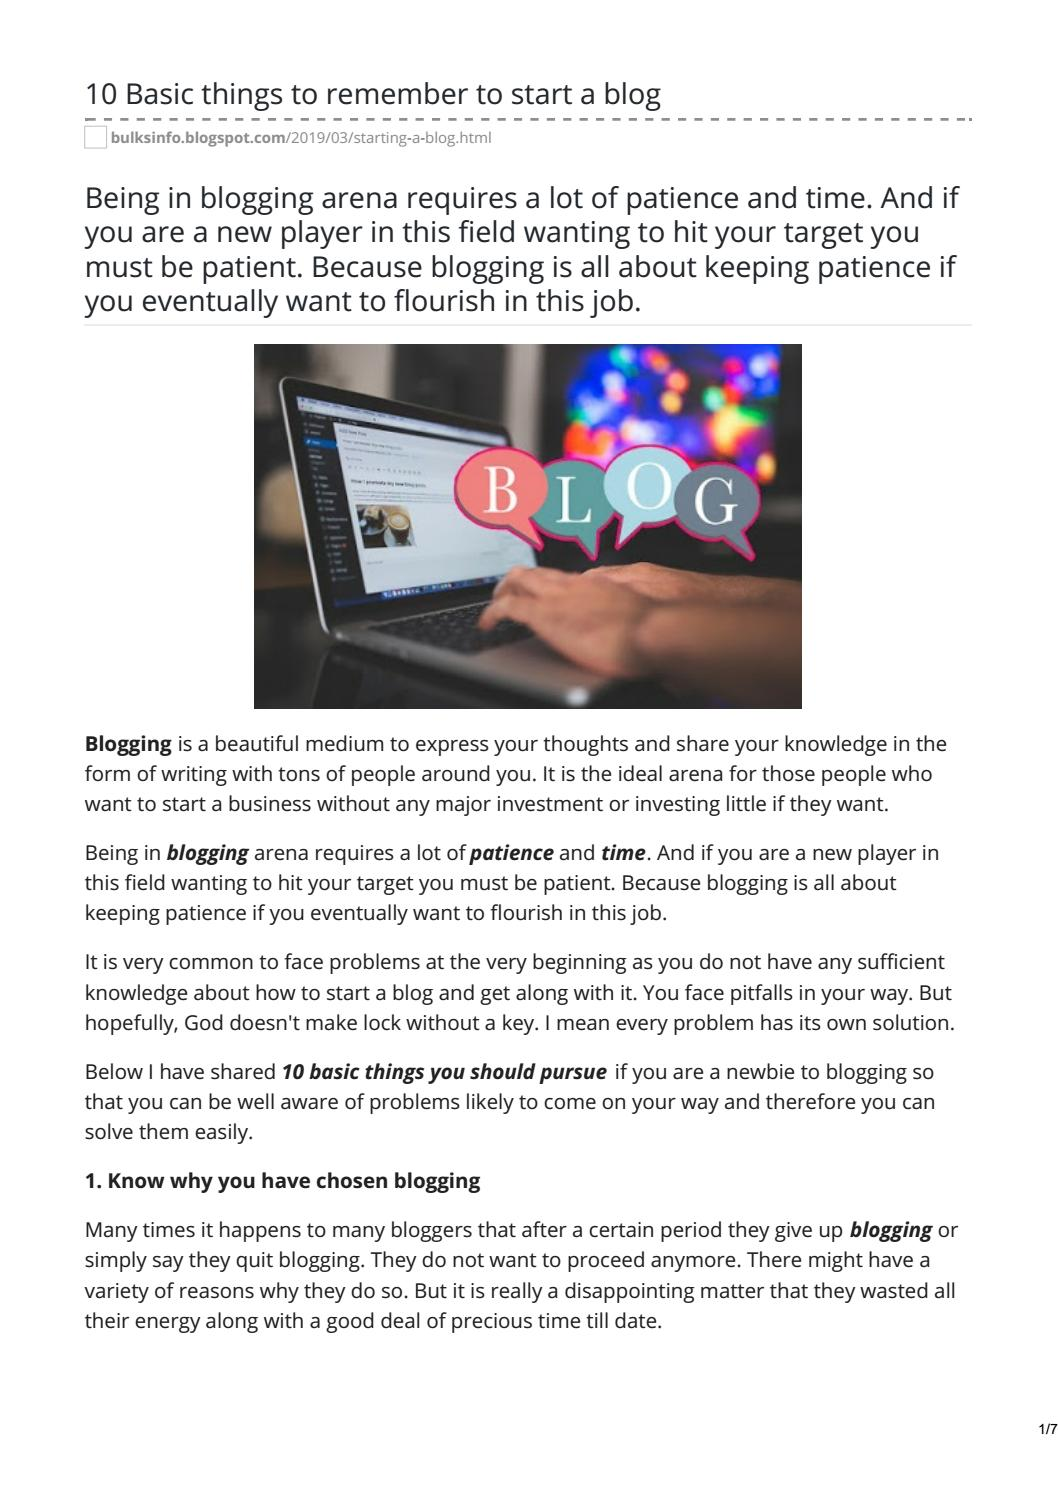 10 Basic Things to Remember to Start a Blog by rupamsardar159 - issuu